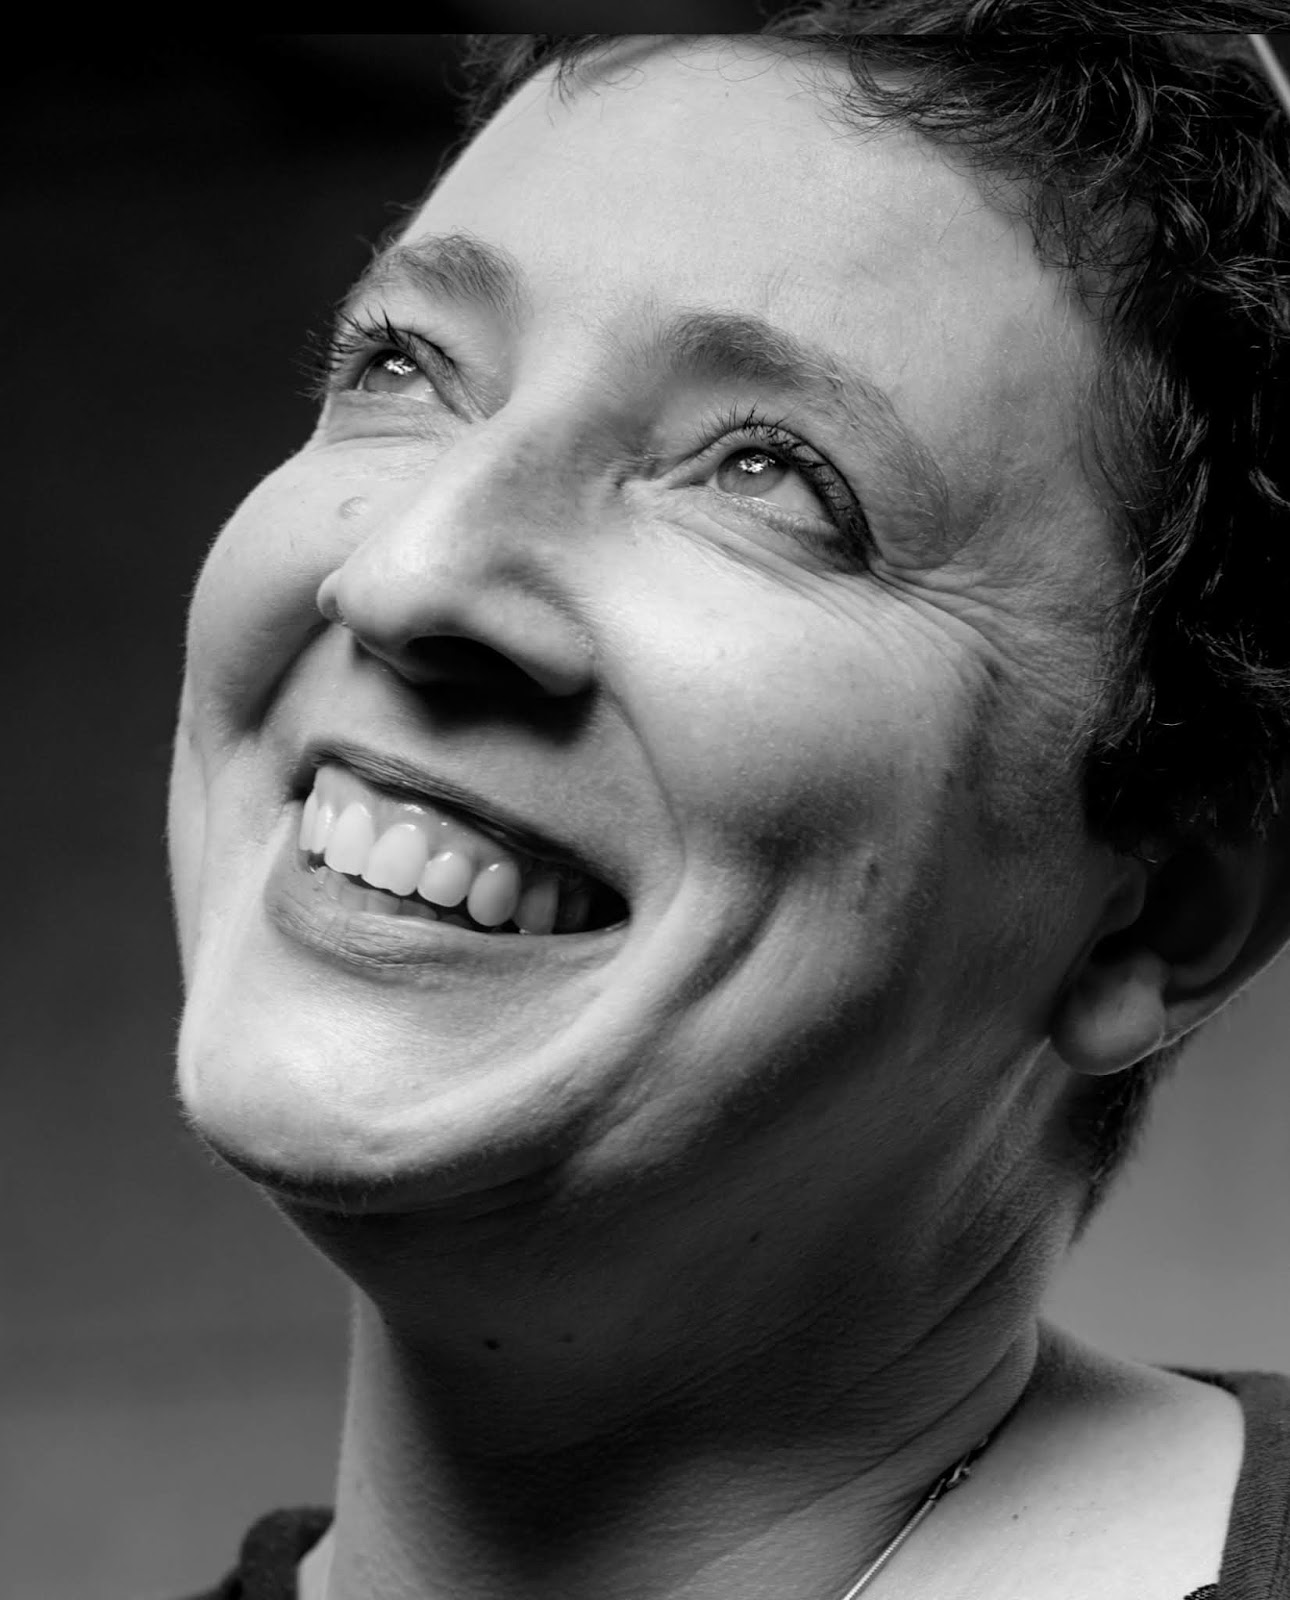 Rob mclennans blog 12 or 20 second series questions with tania tania hershmans photo credit naomi woddis third short story collection some of us glow more than others was published by unthank books in may 2017 fandeluxe Gallery